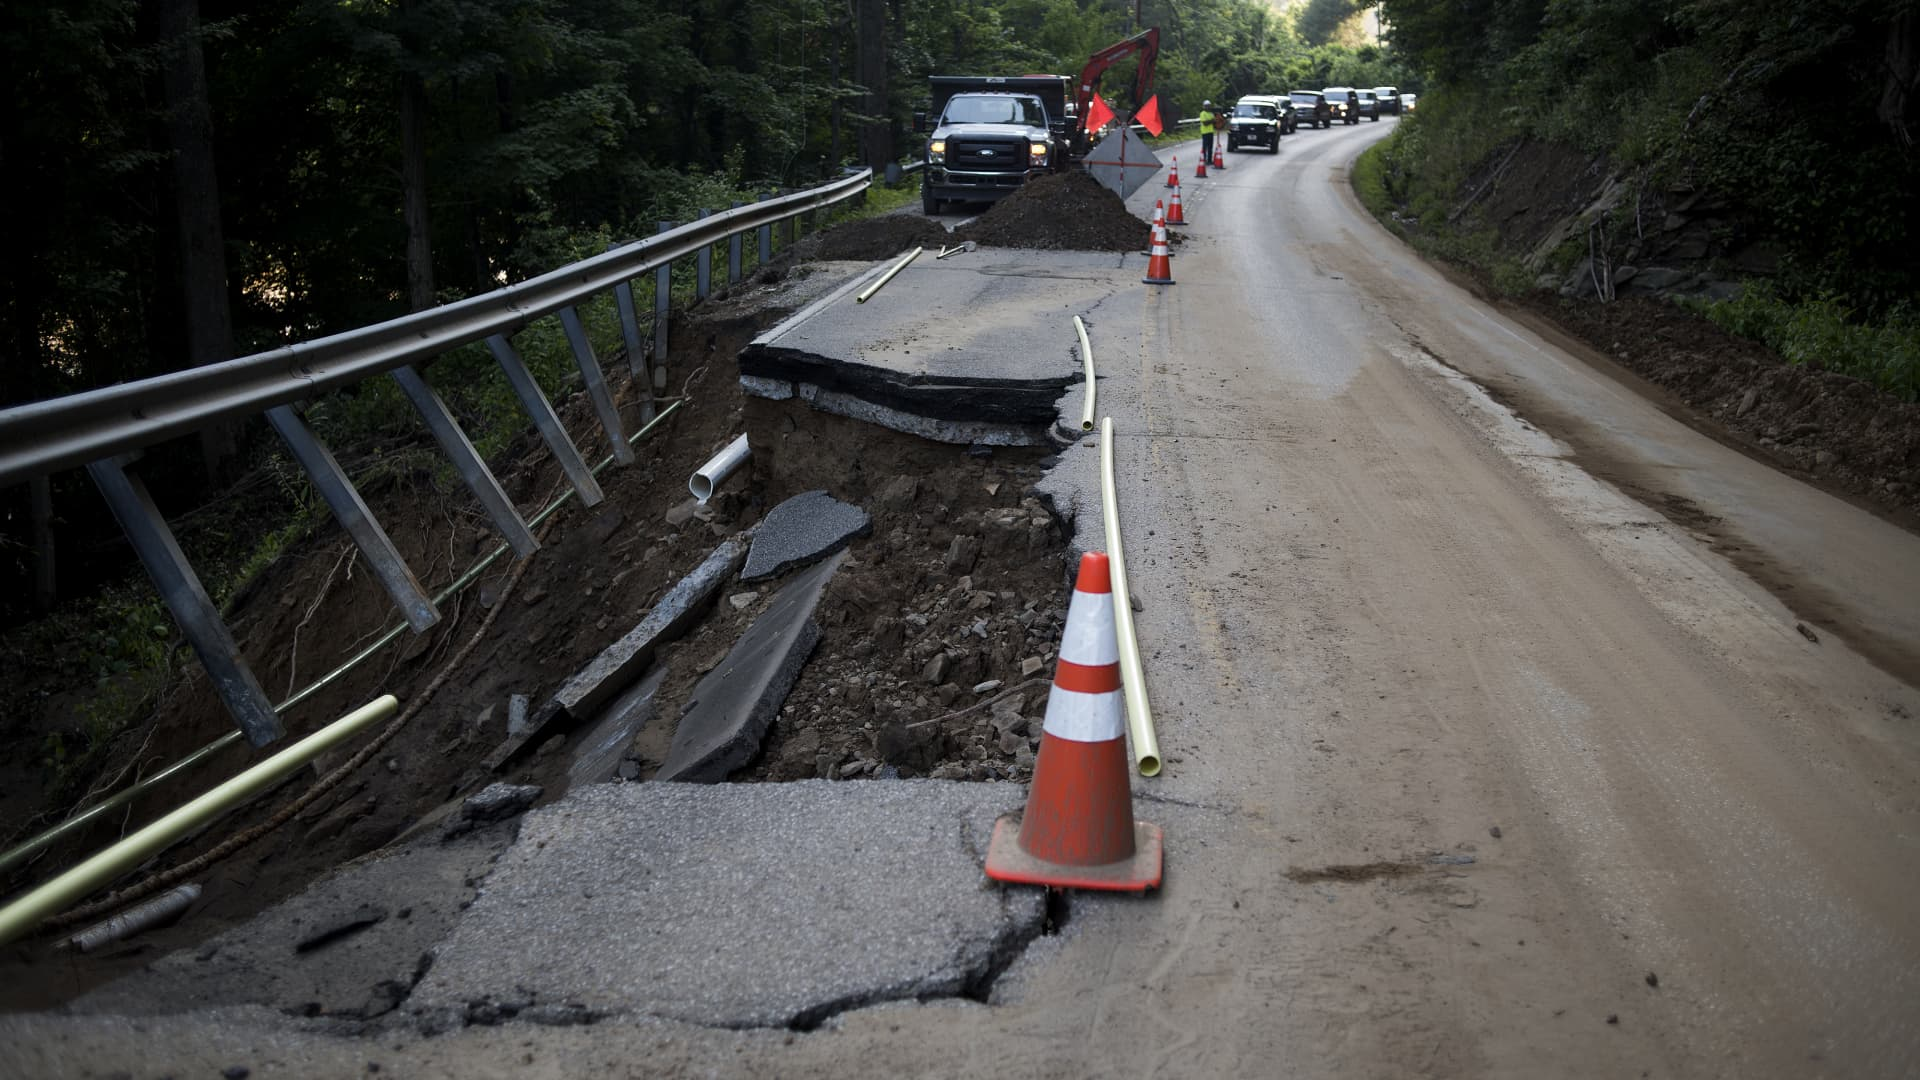 A section of road collapsed along State Route 4 on June 25, 2016 outside of Queen Scholls, West Virginia.